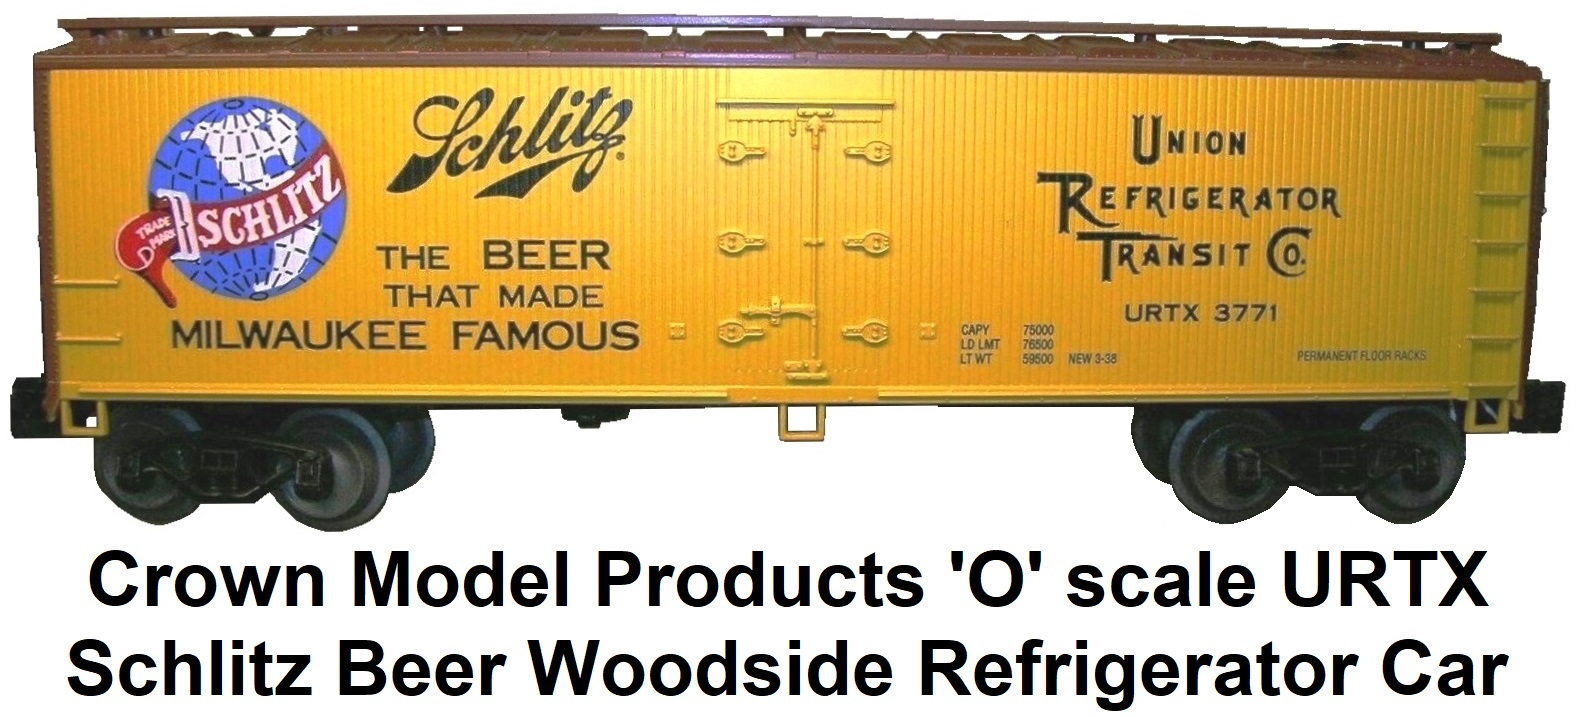 Crown Model Products 'O' scale Schlitz Beer Woodside Refrigerator Car #4000